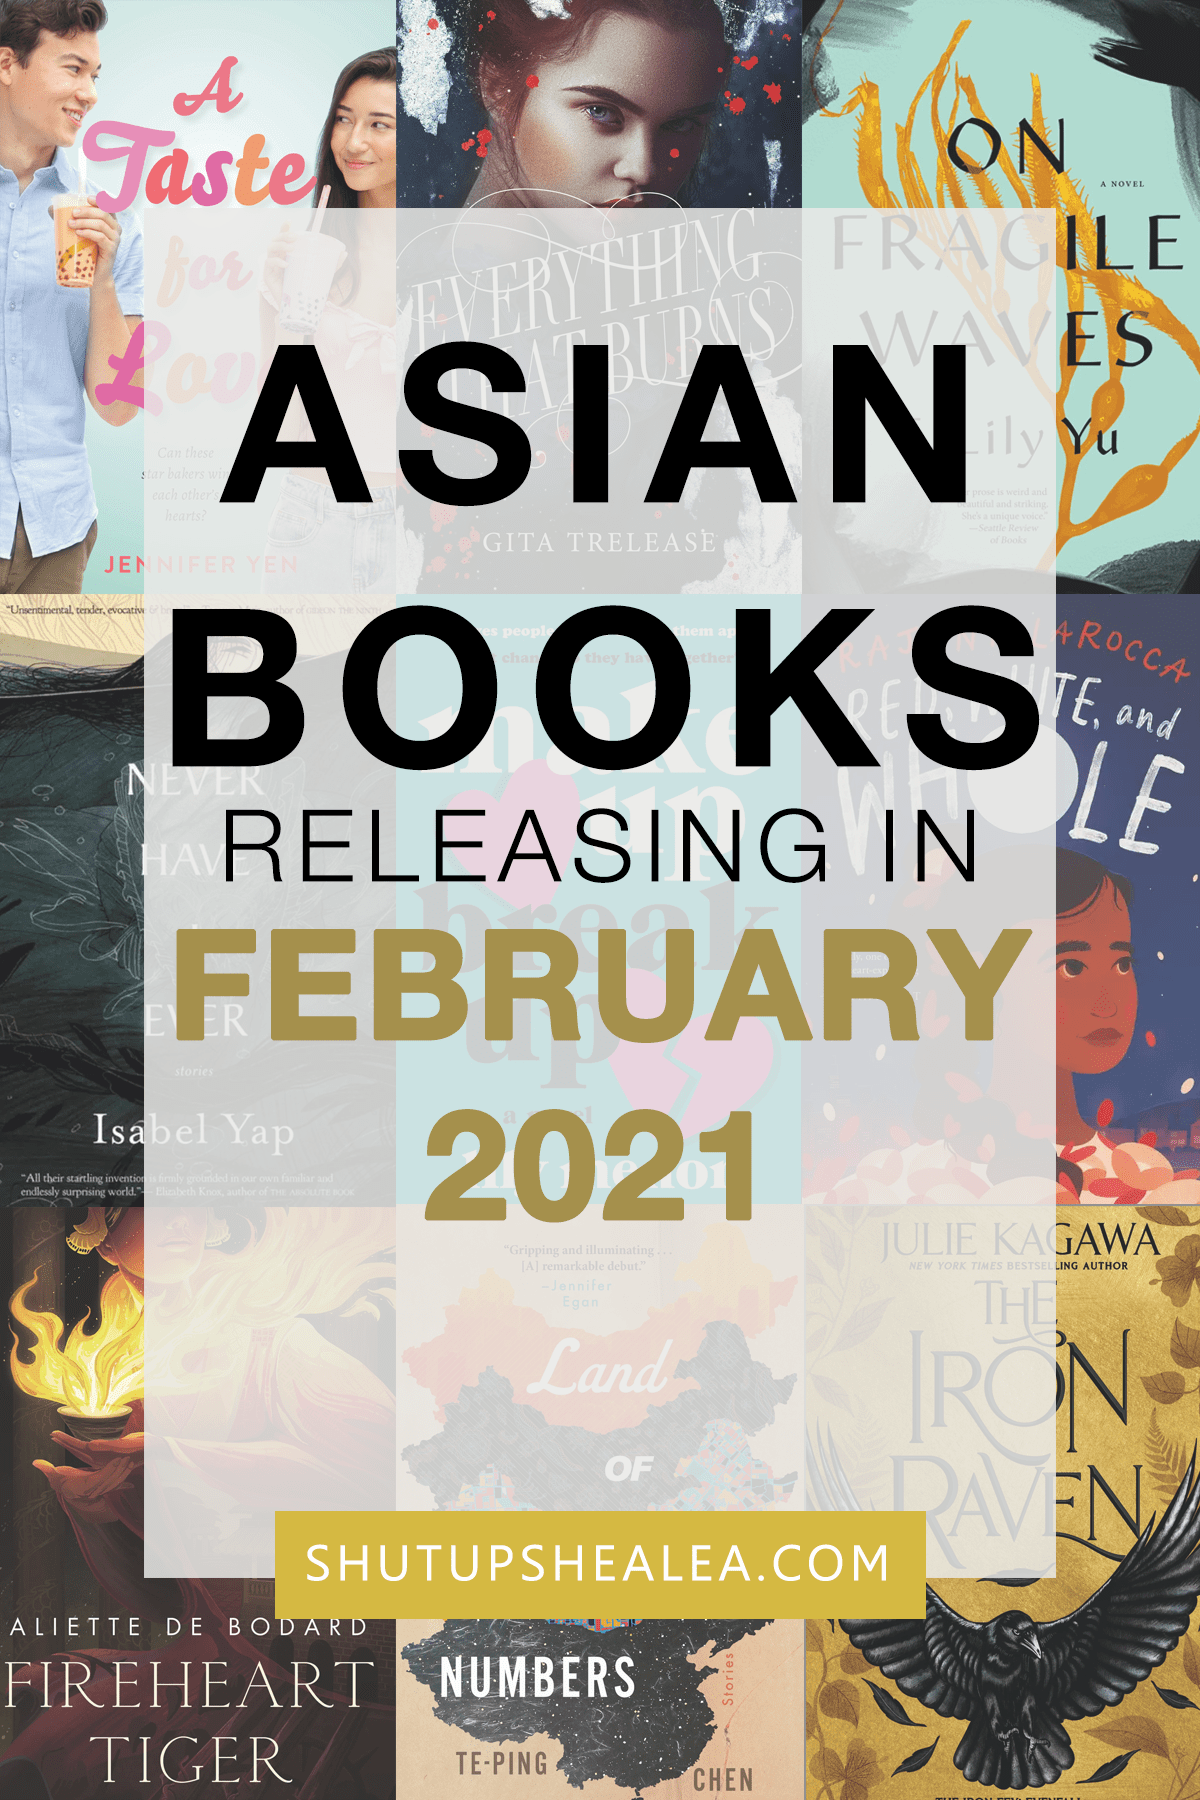 Books on the Rice: February 2021 releases from Asian authors